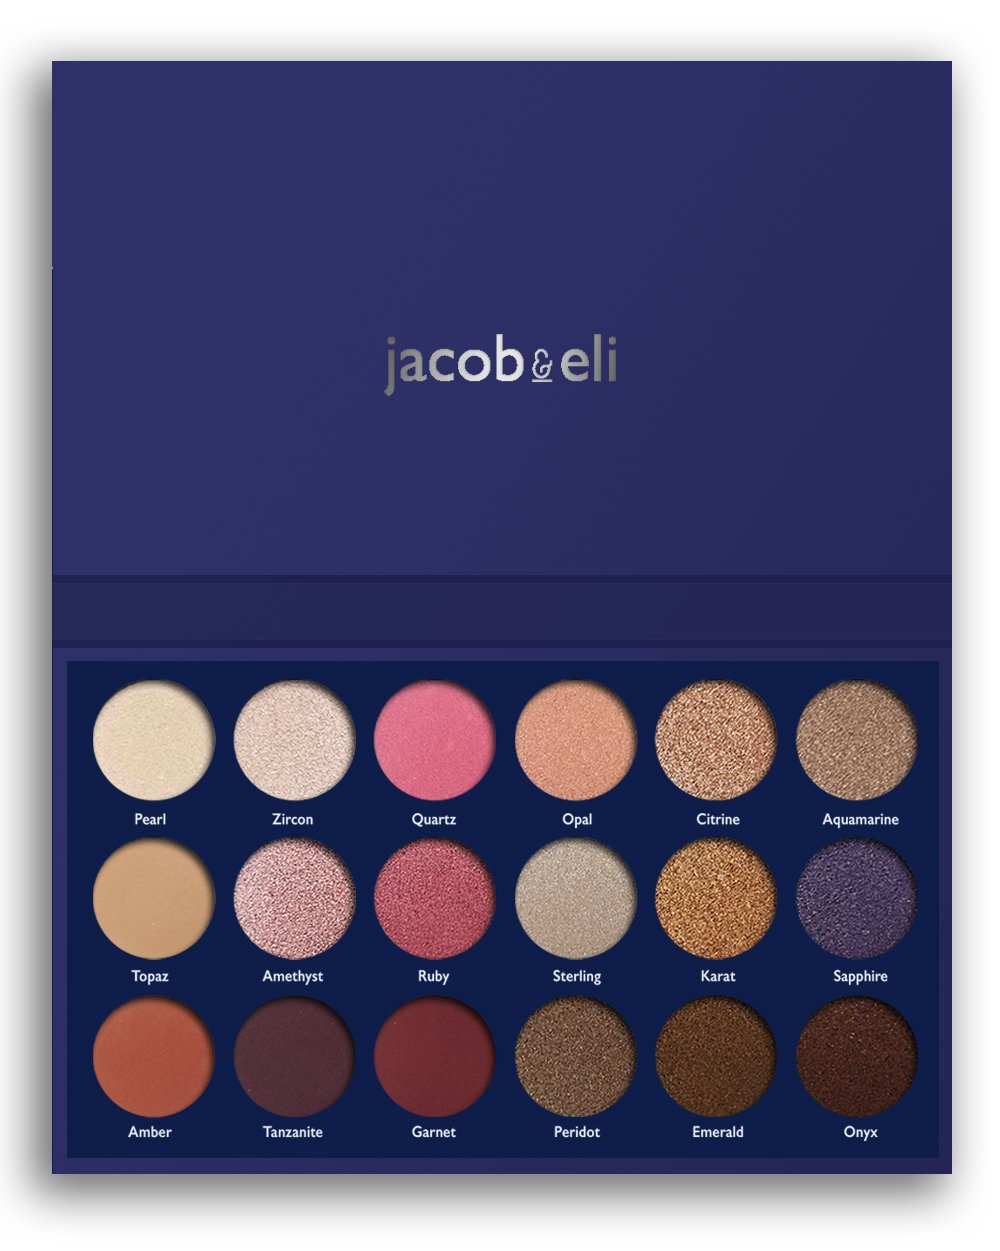 18 Super Pigmented - Top Influencer Professional Eyeshadow Palette all finishes, 5 Matte + 9 Shimmer + 4 Duochrome - Buttery Soft, Creamy Texture, Blendable, Long Lasting (Hidden Gems) by Jacob & Eli